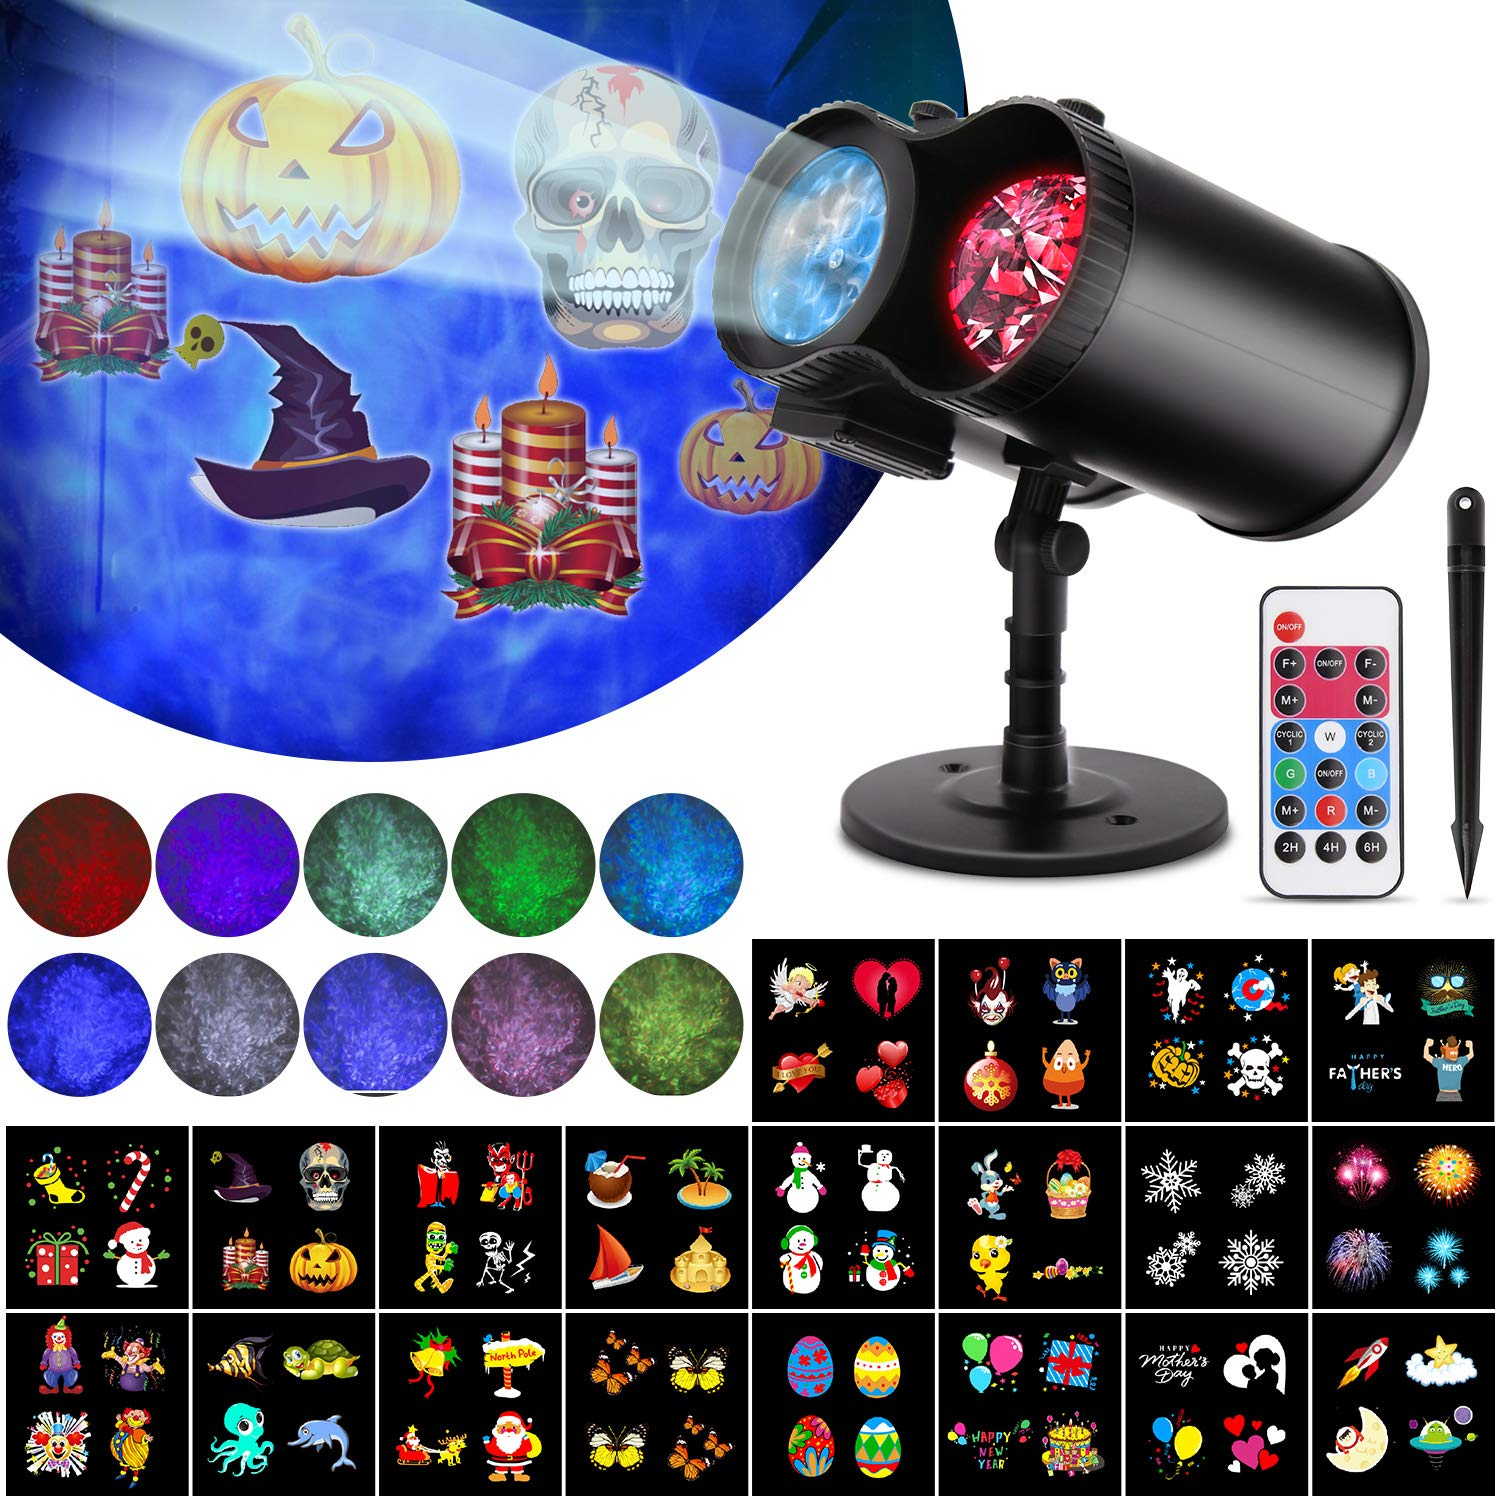 Christmas Halloween Projector Lights, 2-in-1 Ocean Wave Projector Lights Waterproof Indoor Outdoor Holiday Lights 10 Colors 20 Slides Moving Patterns for Christams Valentine's Easter Birthday Party by Vozada